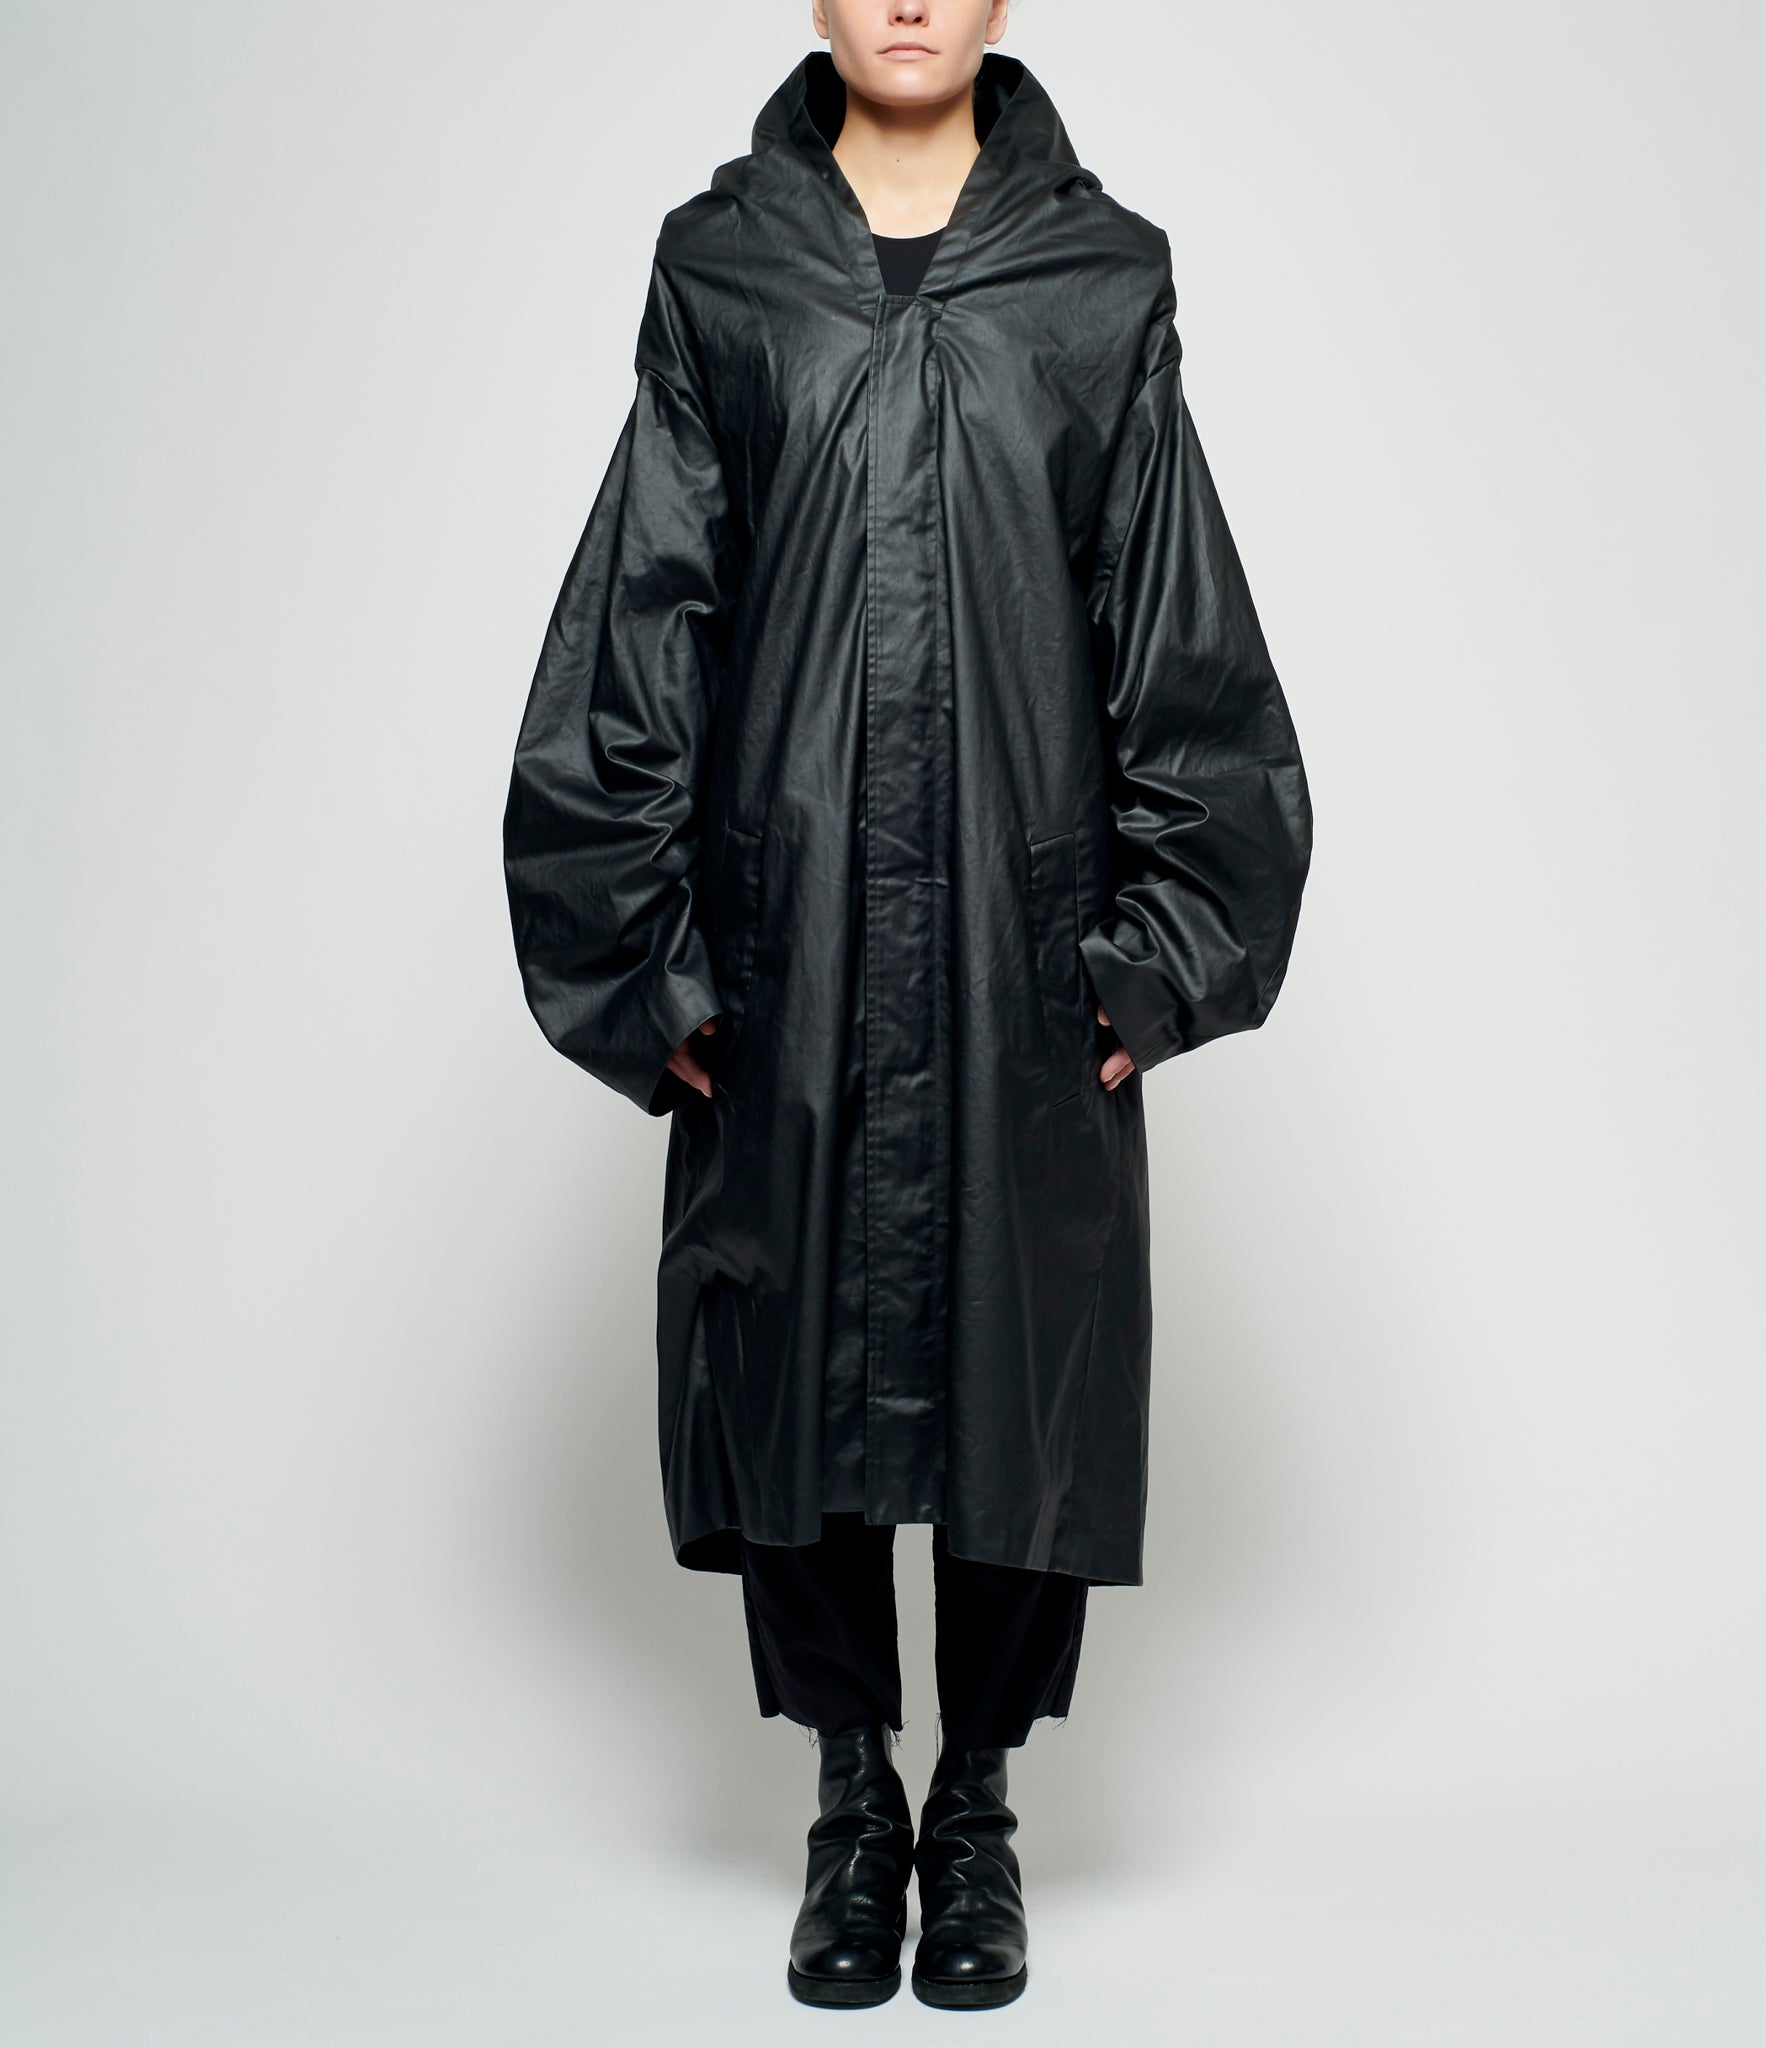 Sagittaire A Marlboro Graphic PVC Coated Cotton Hooded Mac Coat